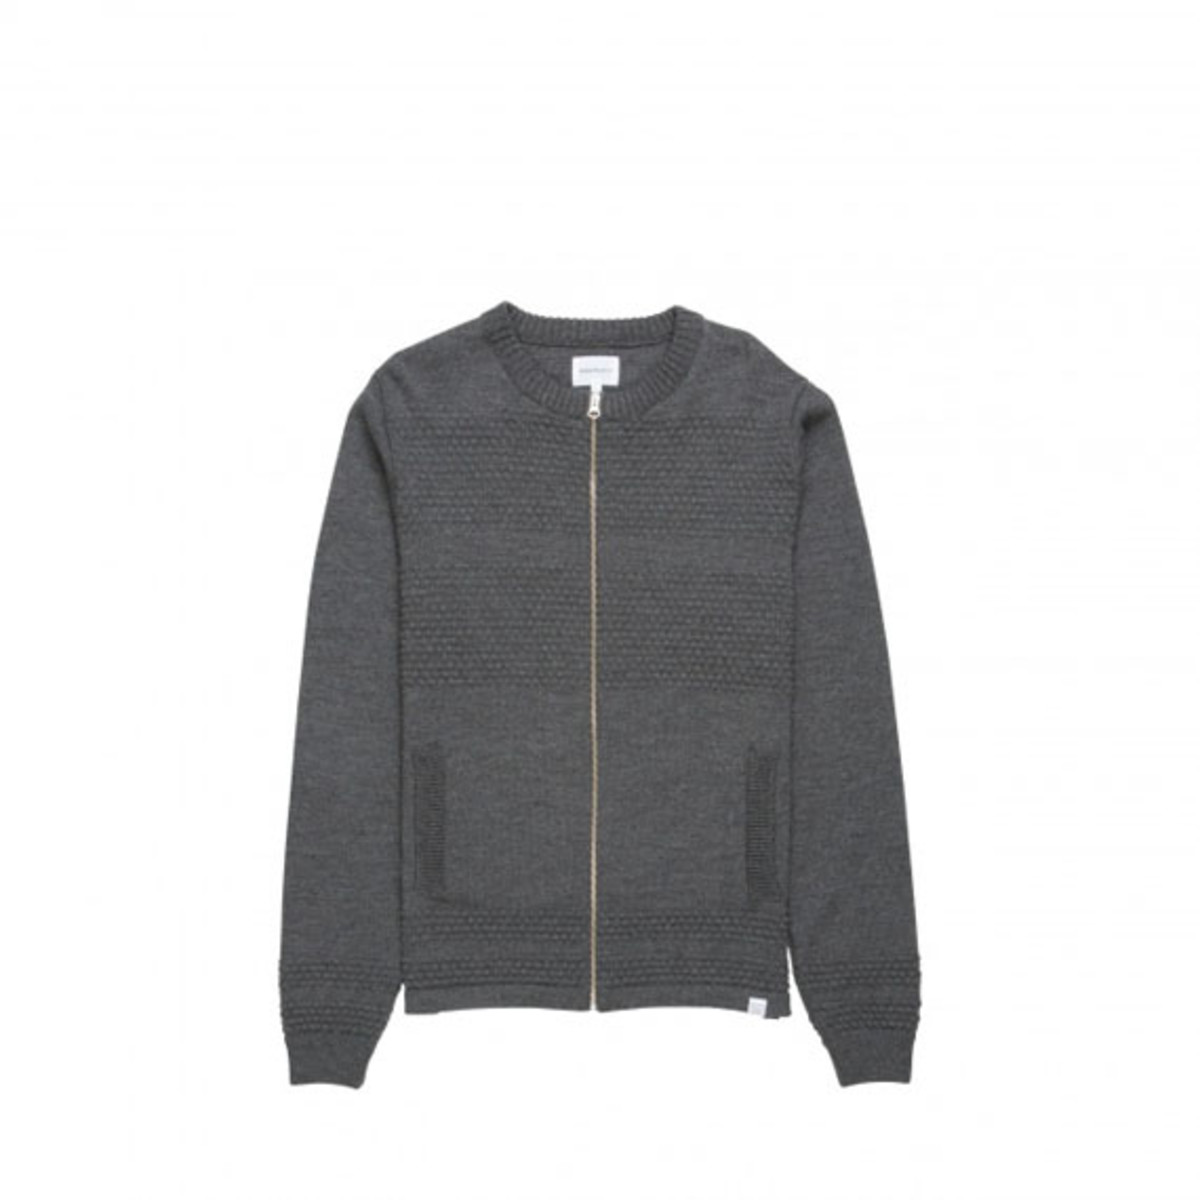 norse-projects-fall-winter-2013-collection-22